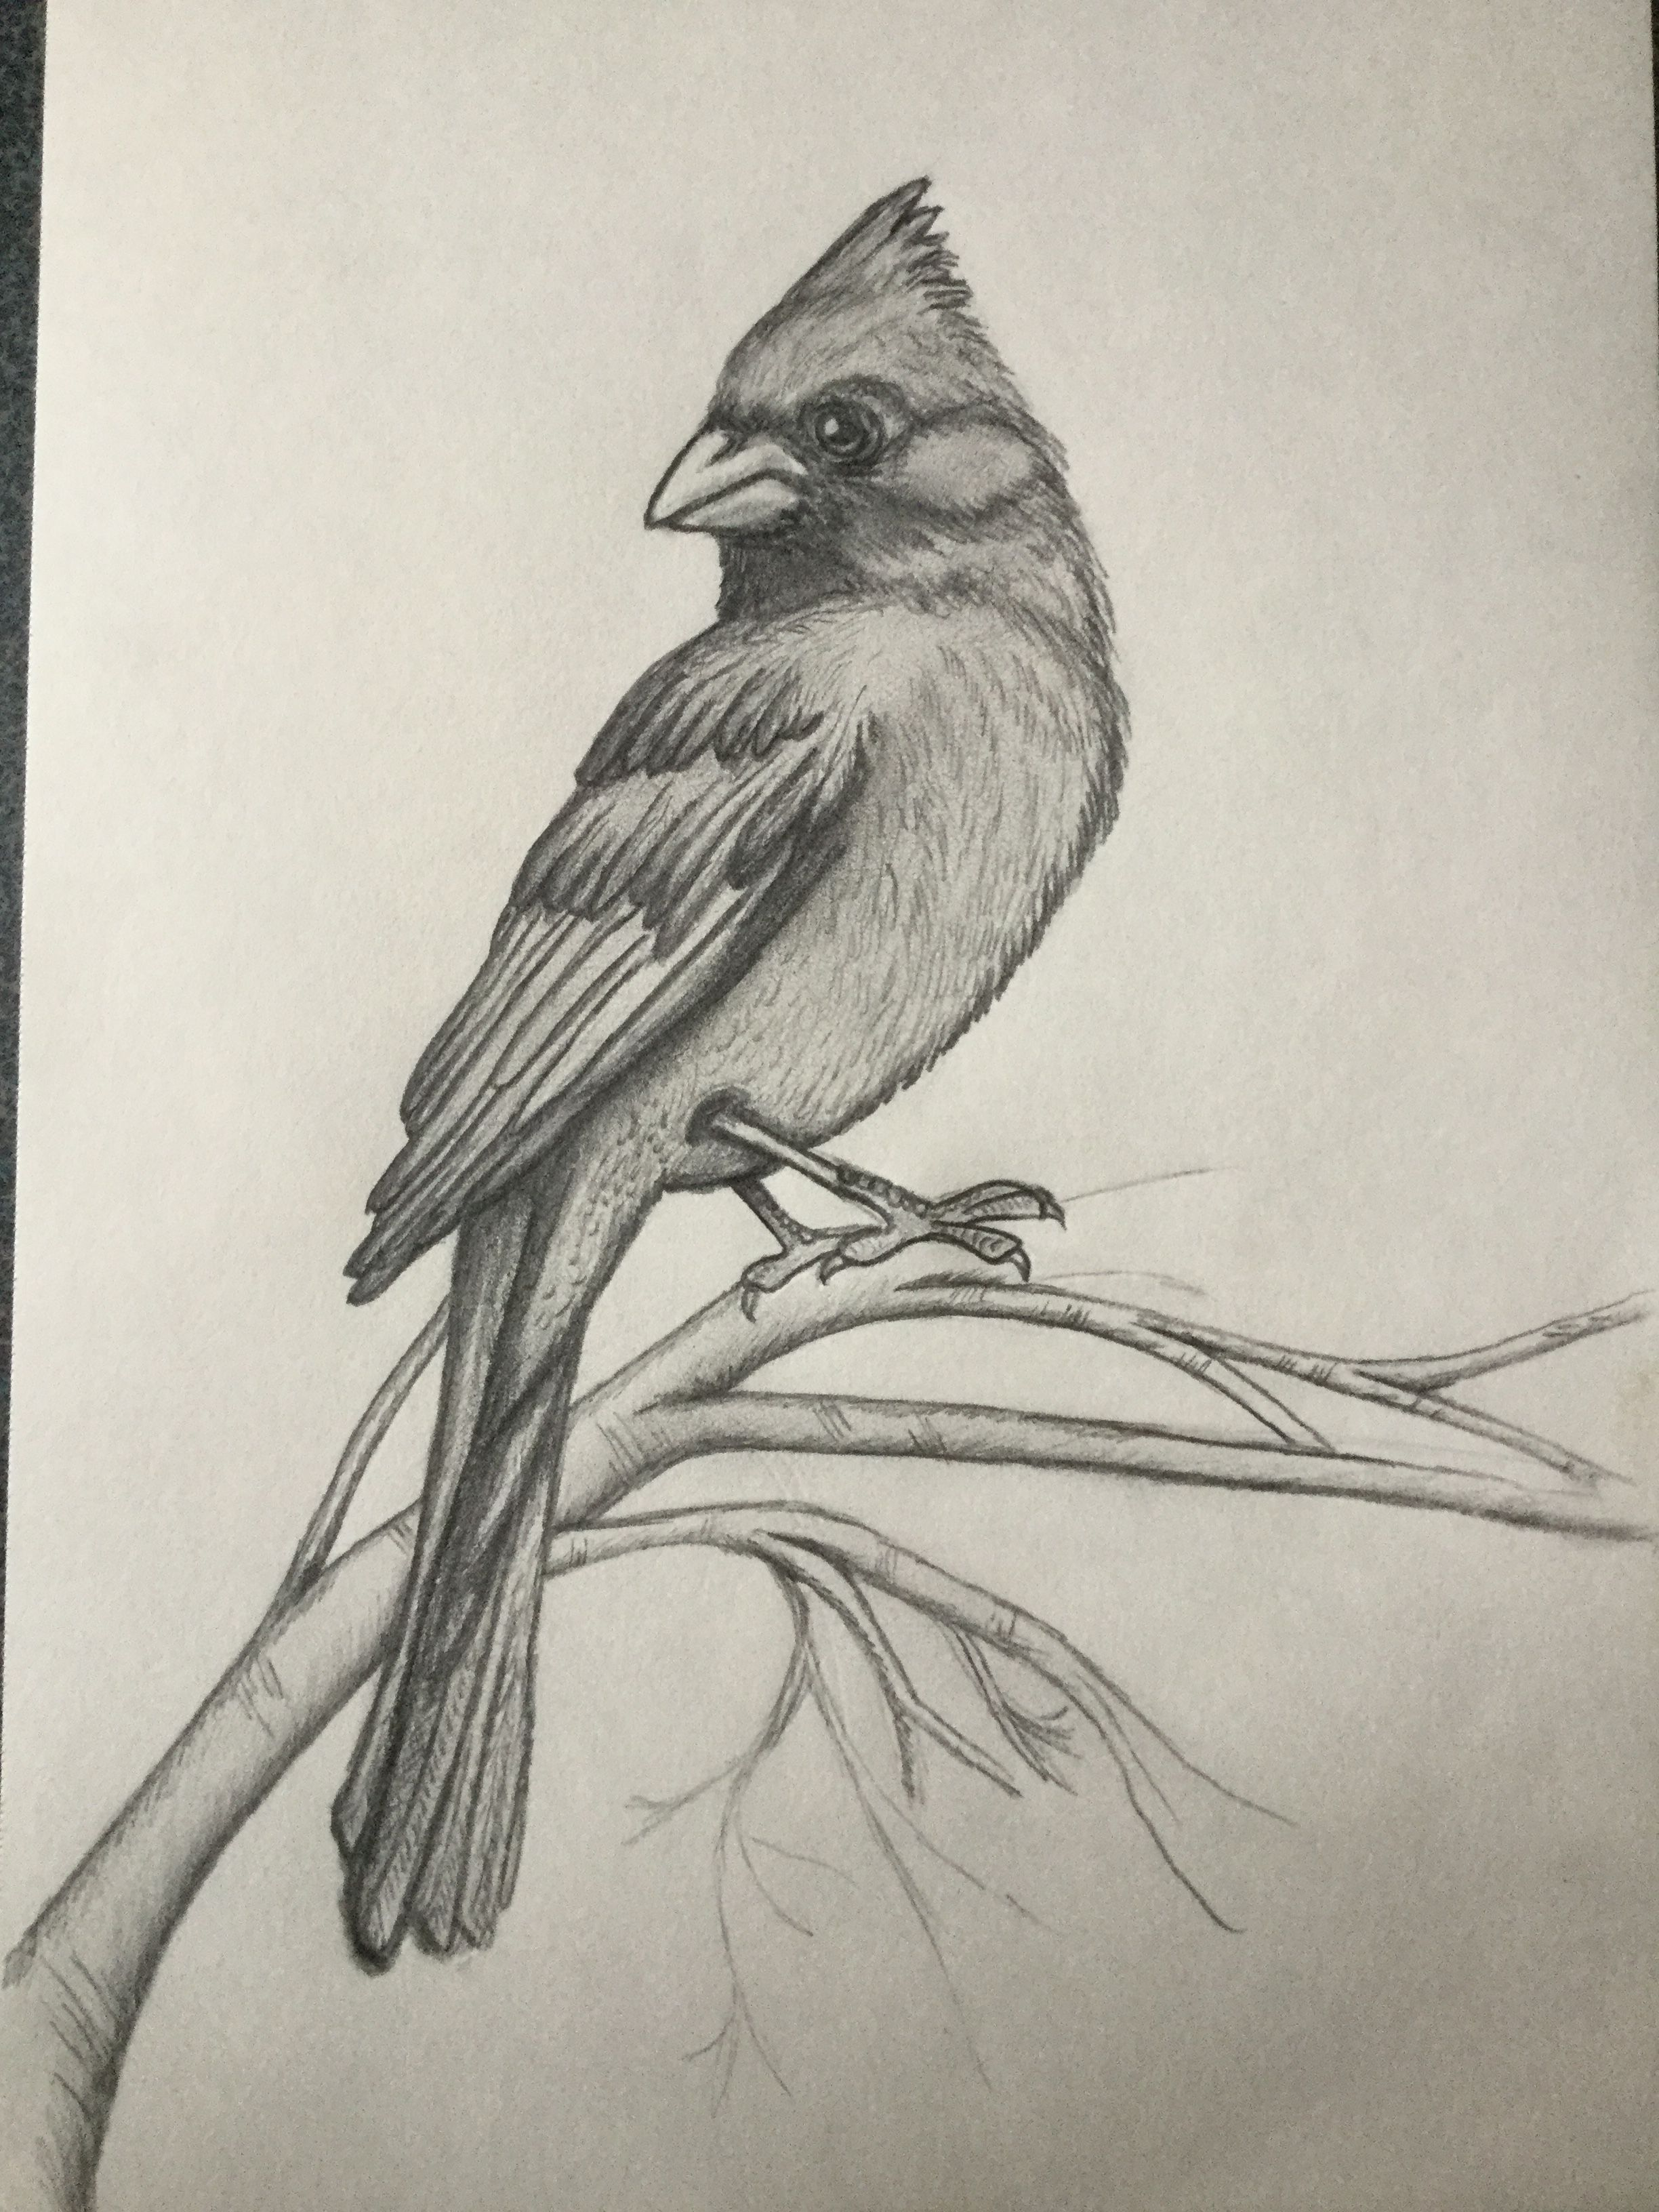 My cardinal bird drawings easy drawings animal drawings pencil drawings shading drawing